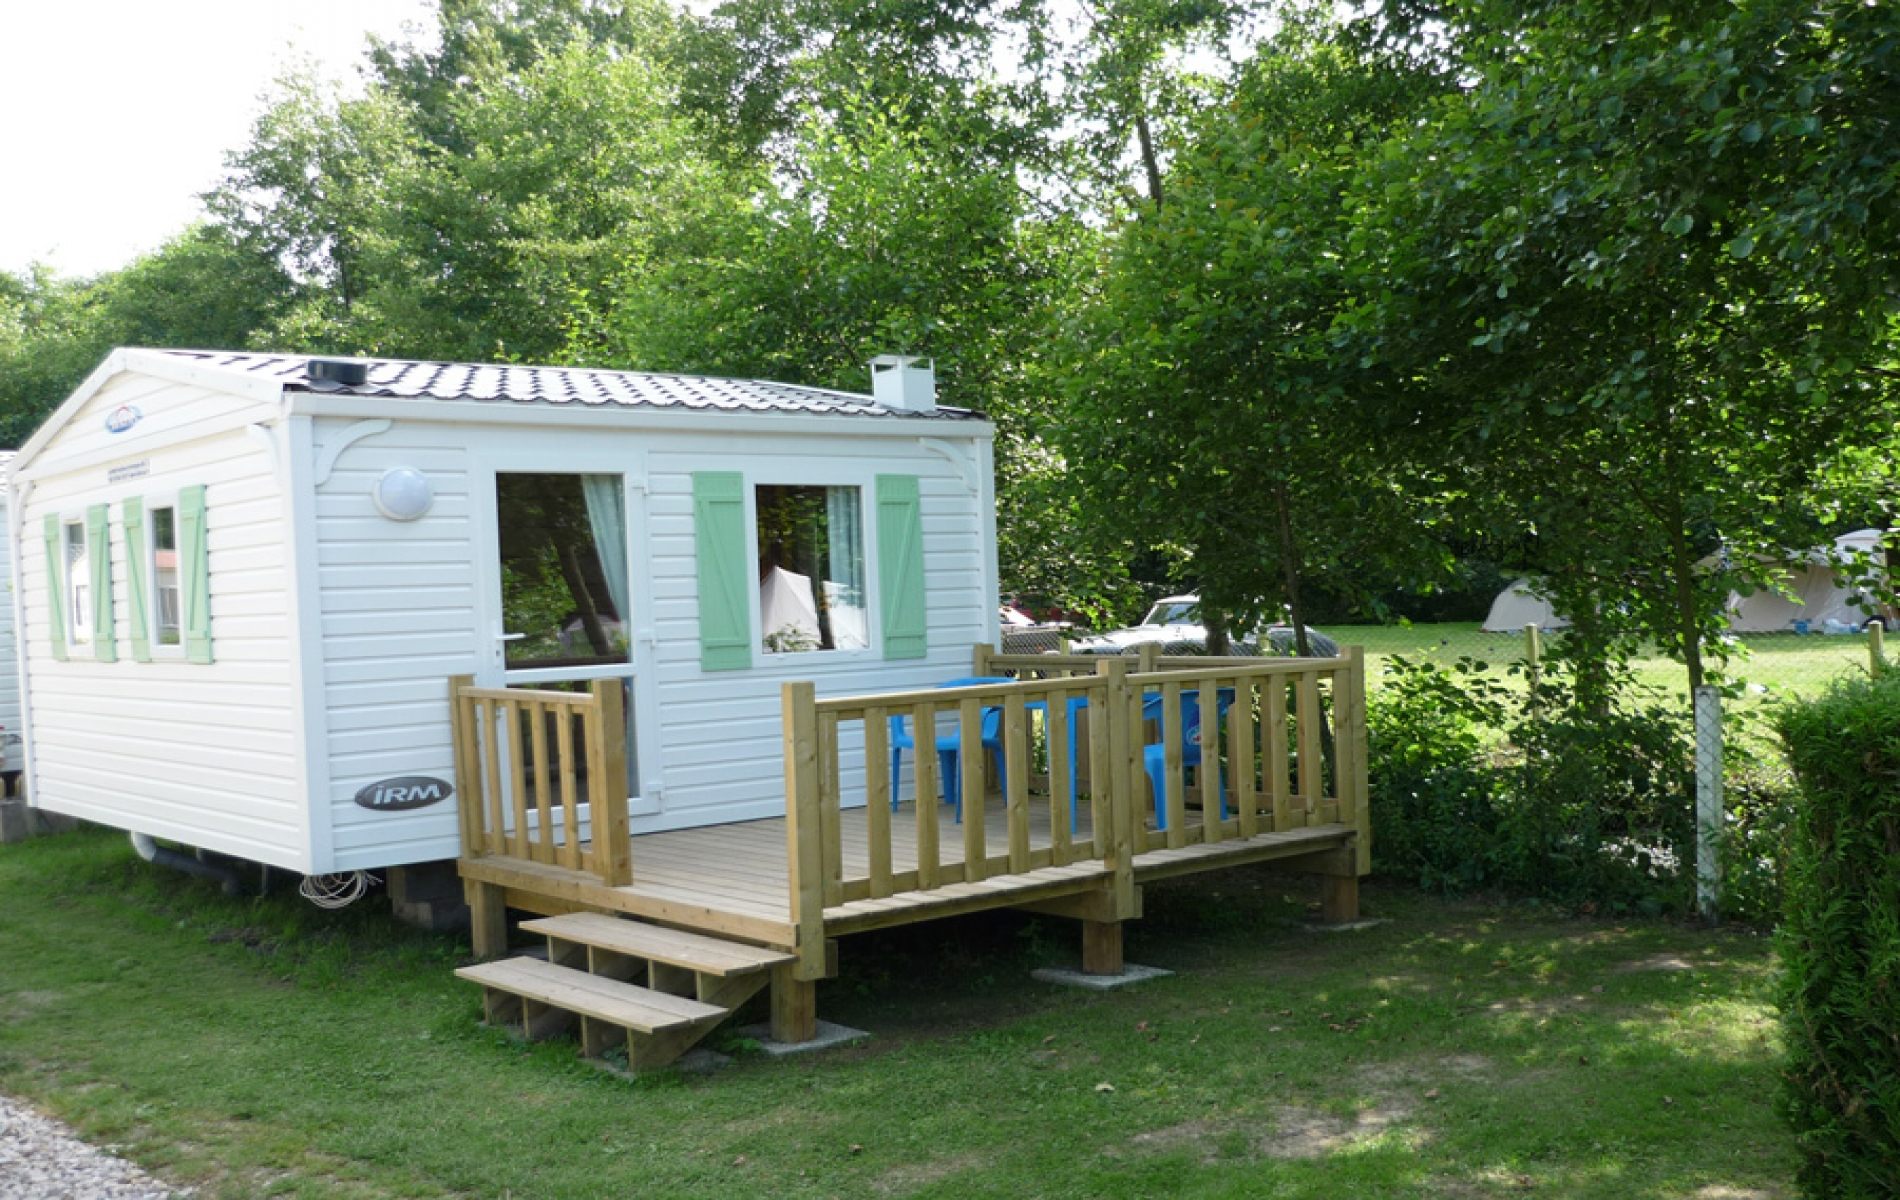 20150427155446(4) Mobile Home Camping on camping cars, camping at home, rv park model homes, camping tents, camping photography, camping parks, camping sheds, camping trailers, camping fences, camping nursery mobile,